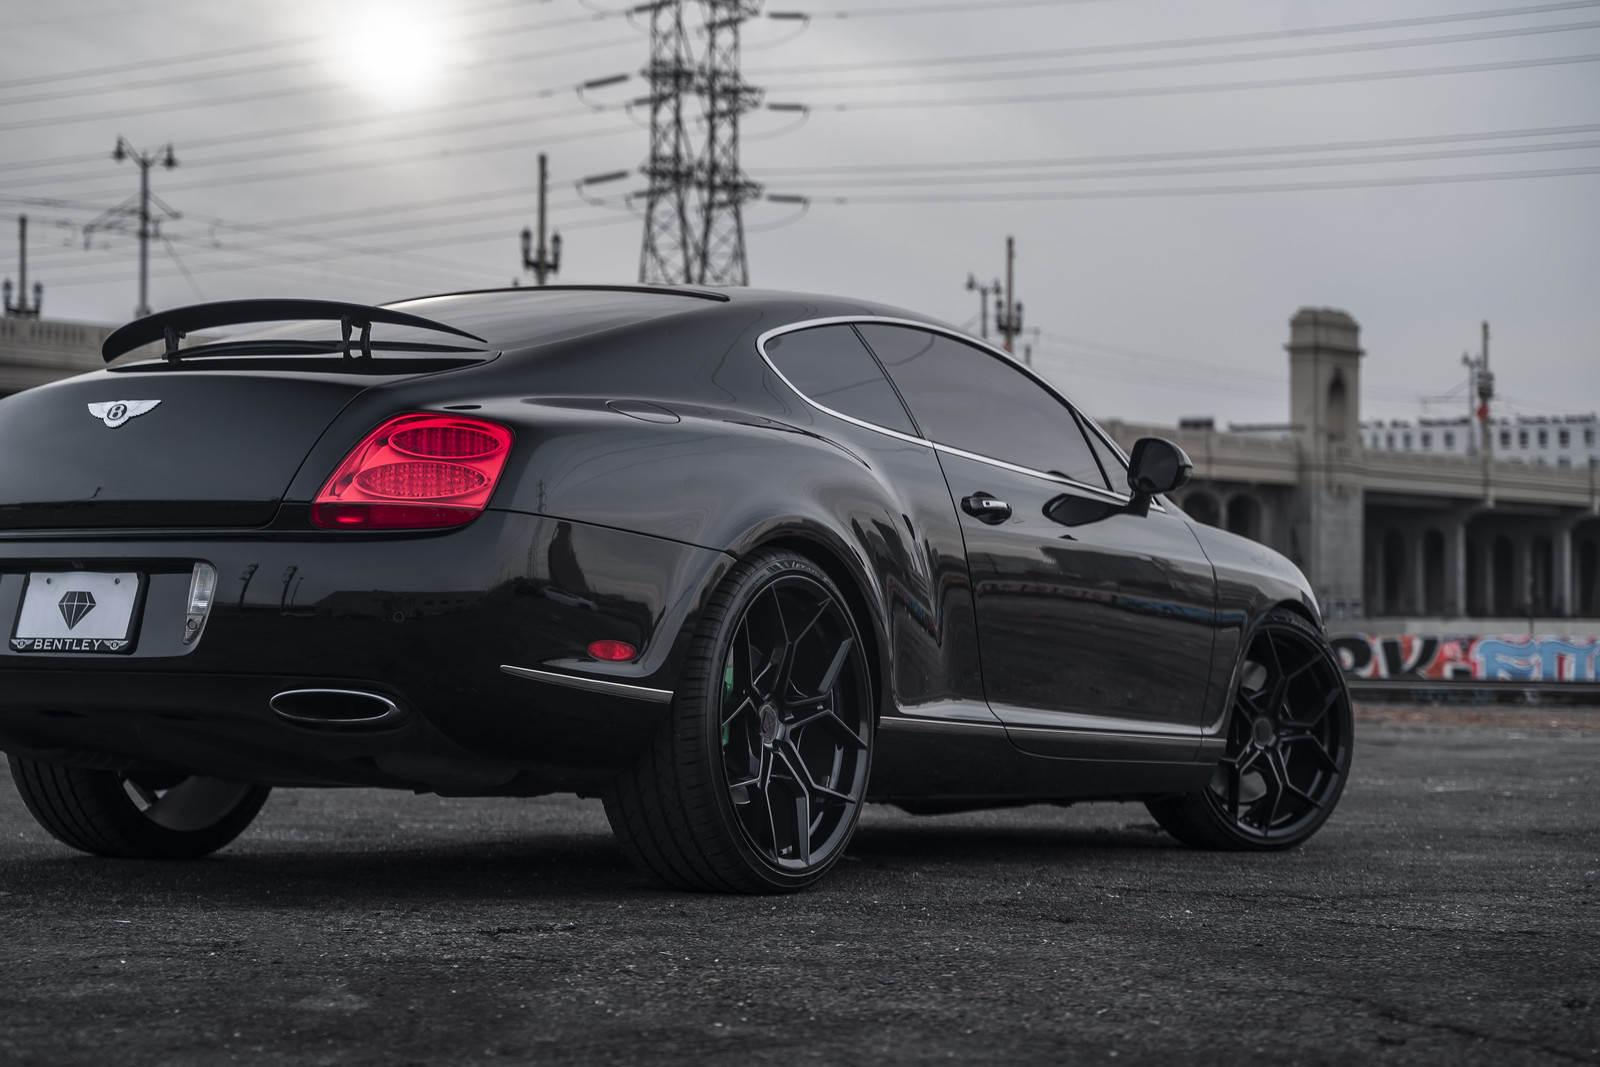 2010_Bentley_Continental_GT_BDF25_Gloss_Black_5